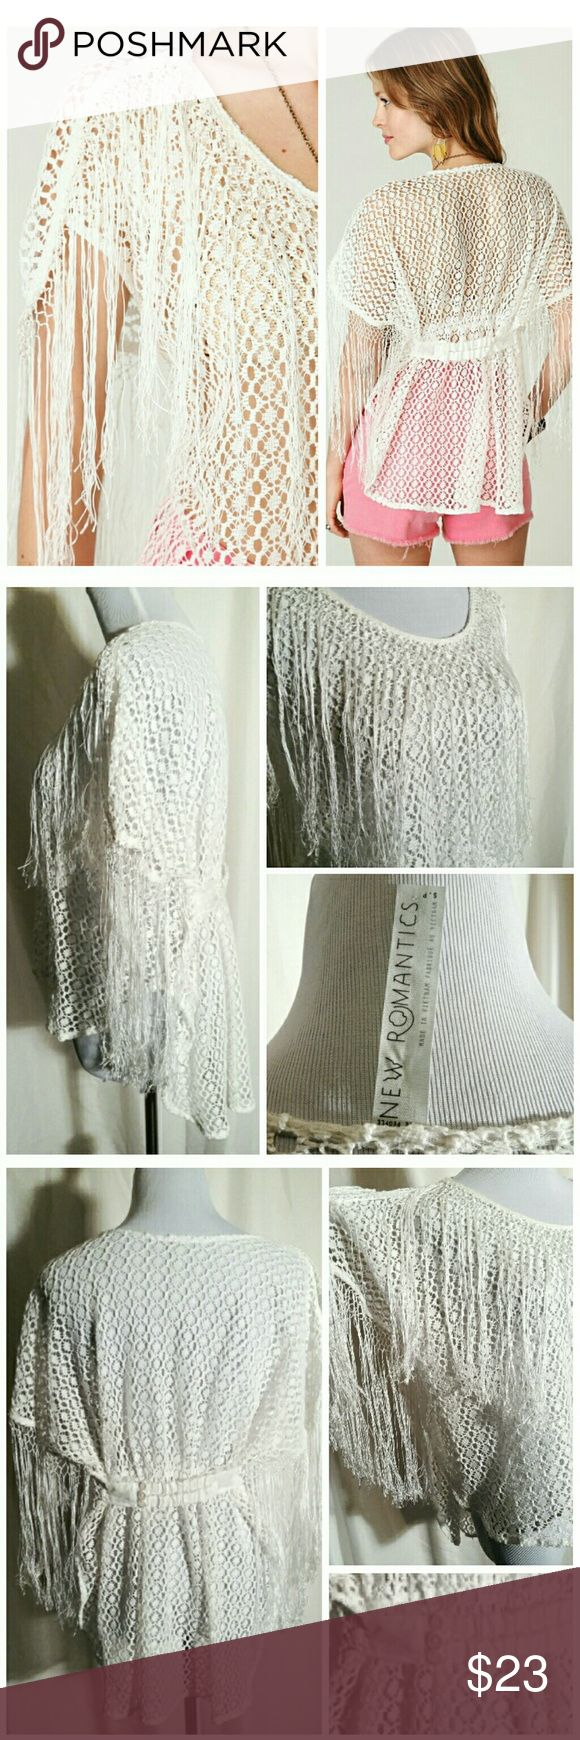 """Free People New Romantics Fringe Blouse 20% Bundle This off-white, hi-lo, fringe sleeve blouse from FP is in very good condition. The fringes have frayed at the bottom which makes it even more books chic!  It is made of 75% polyester & 25% cotton and is machine washable. It measures about 19"""" across everywhere.  🛍 Bundle and Save More!!! Free People Tops Blouses"""